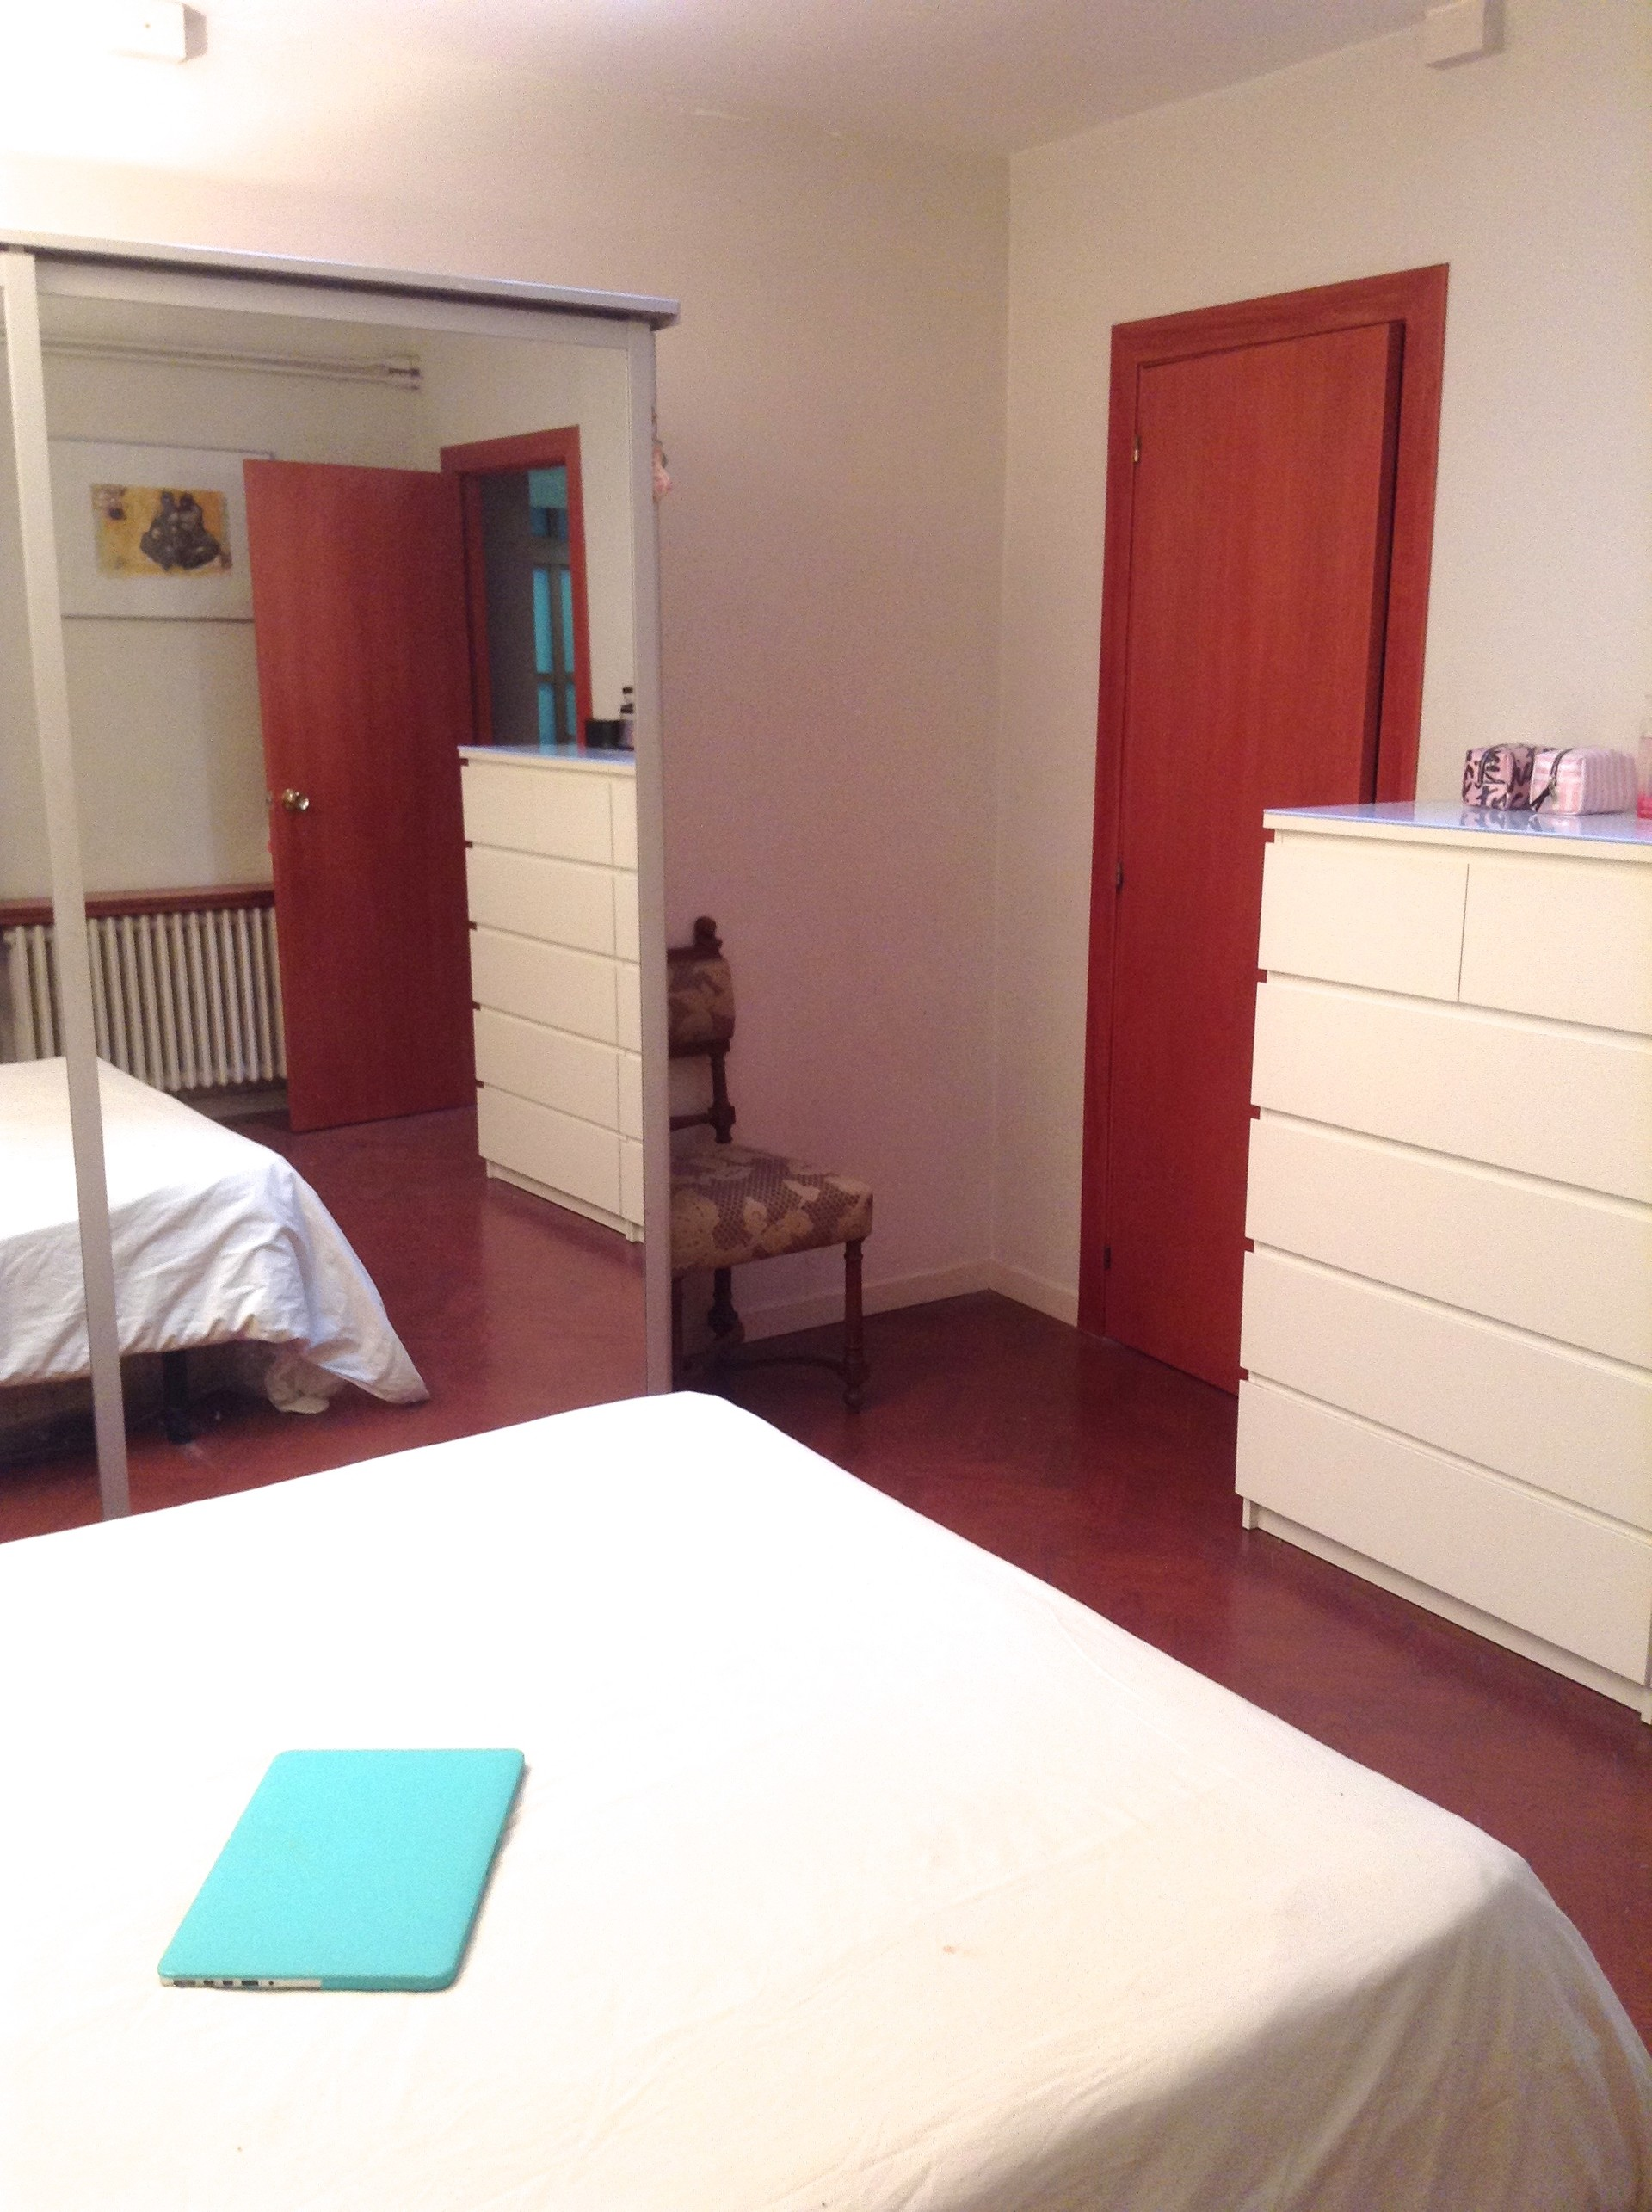 Barcelona Apartments For Rent Students